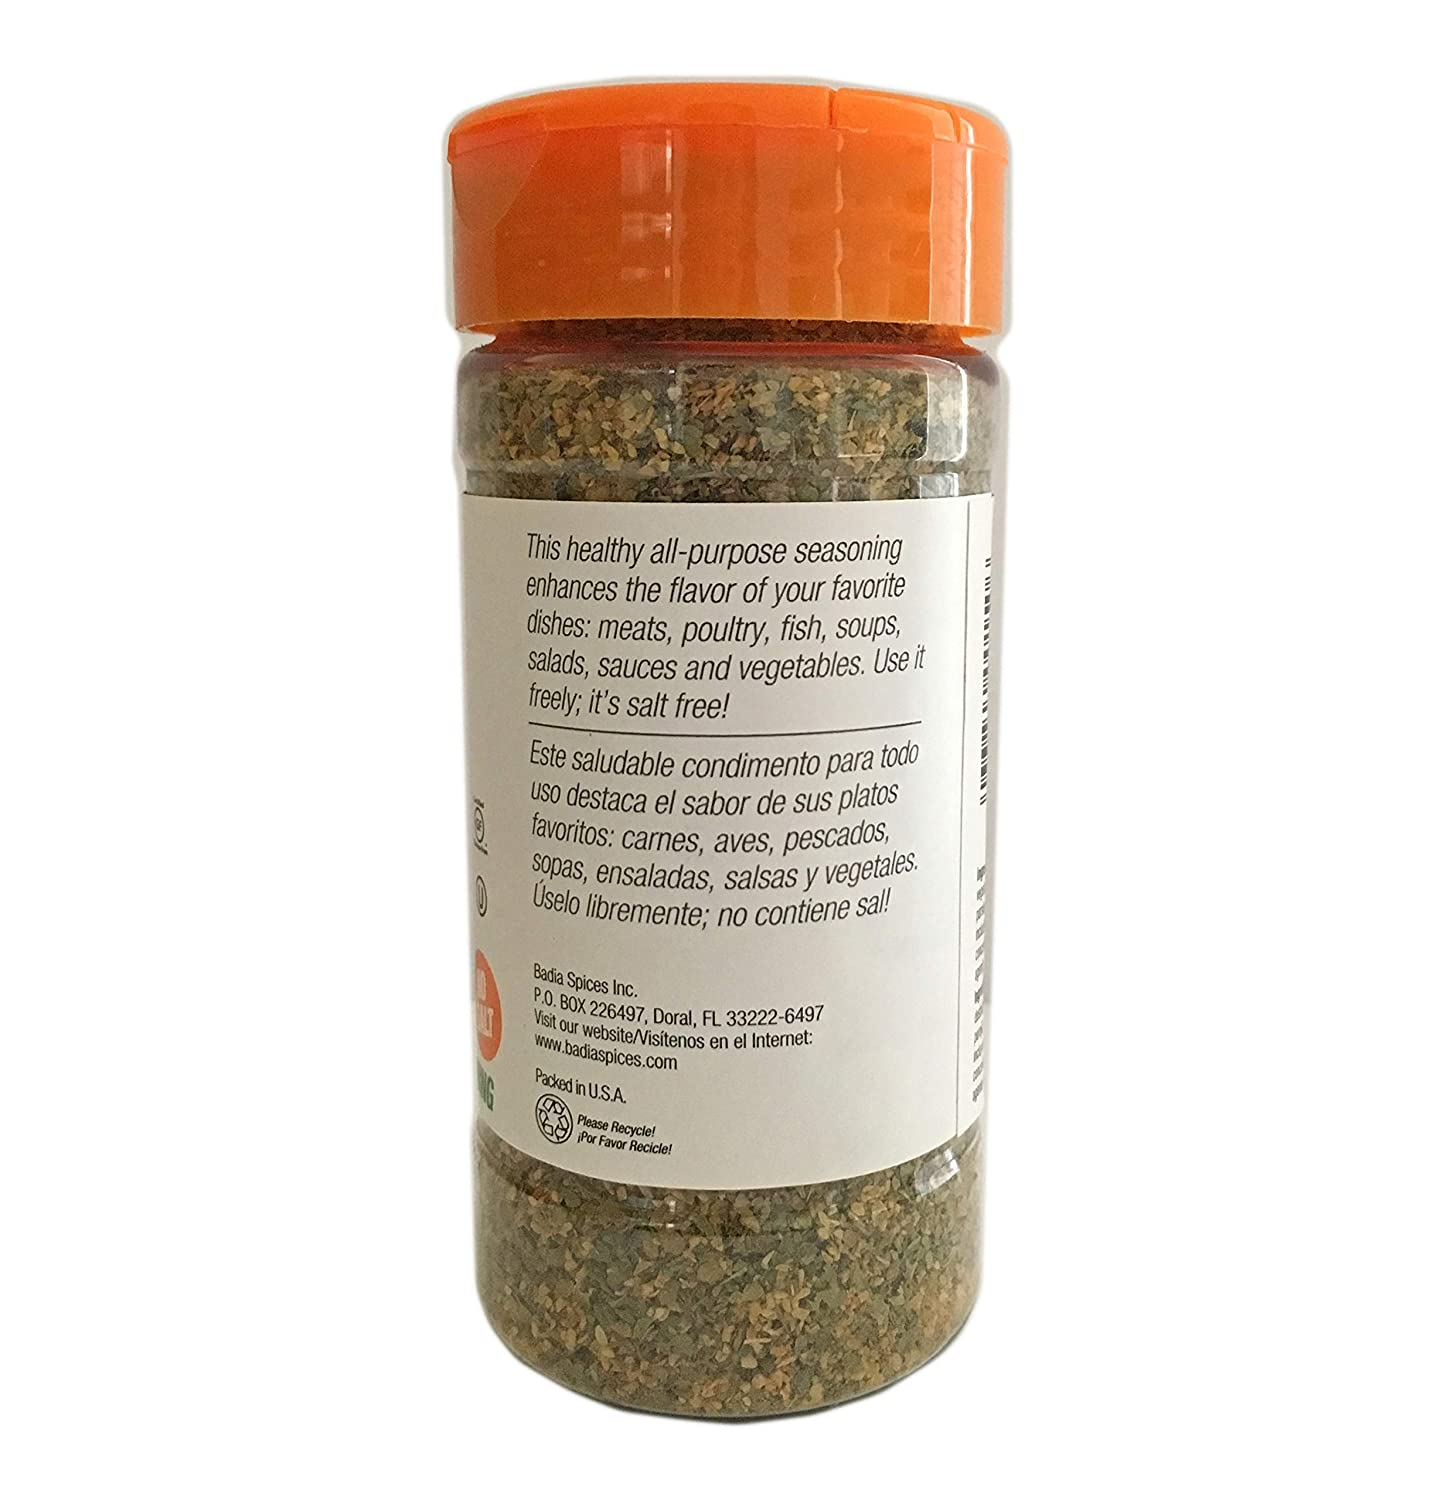 Amazon.com : 4.25 oz 14 Spices Seasoning All Purpose No Salt Sodium Free/Sazon Sin sal Kosher : Grocery & Gourmet Food